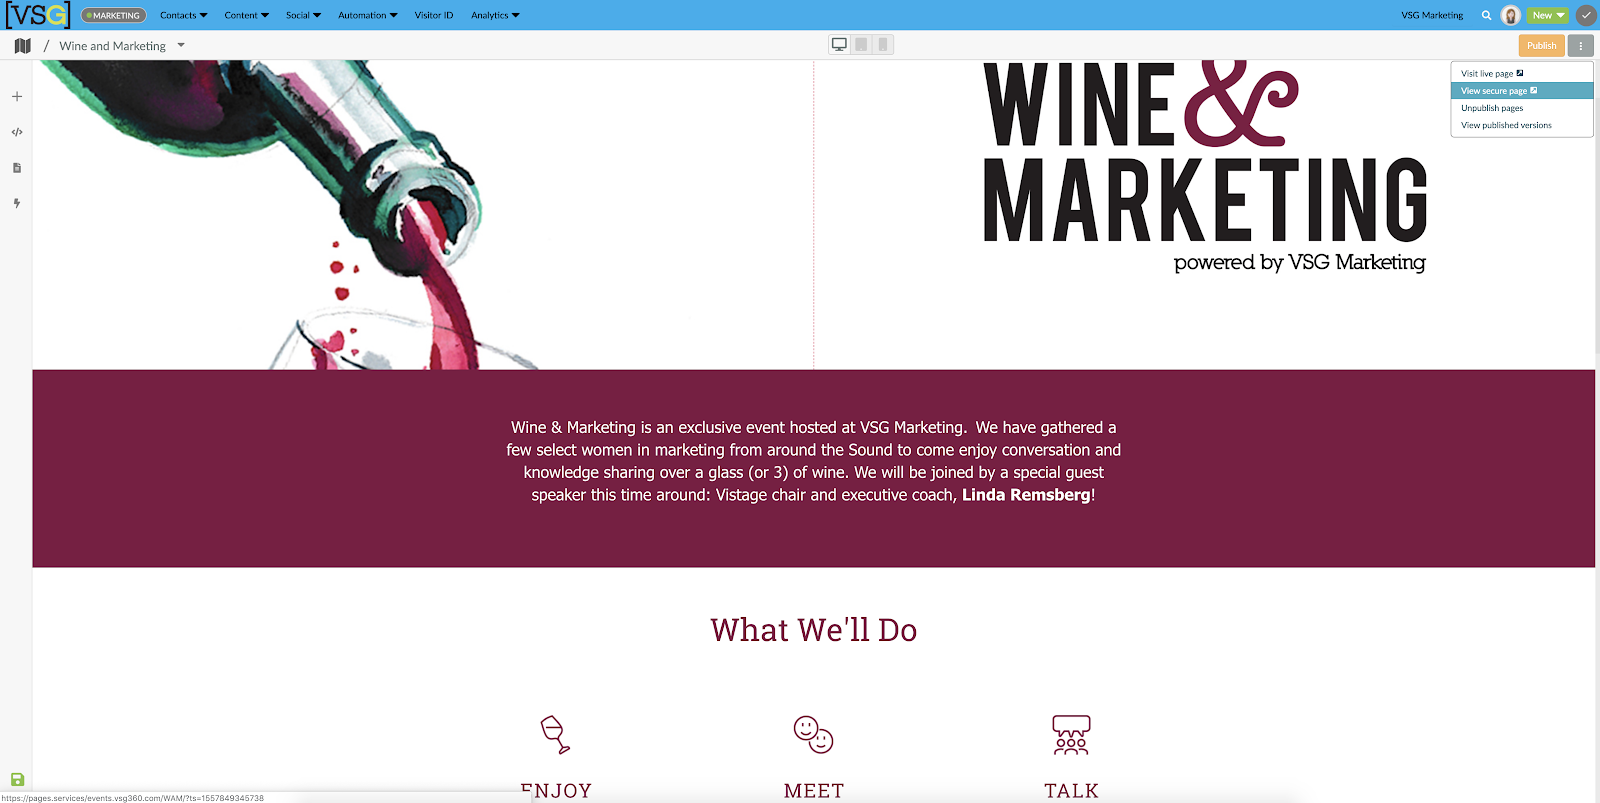 Wine and Marketing VSG